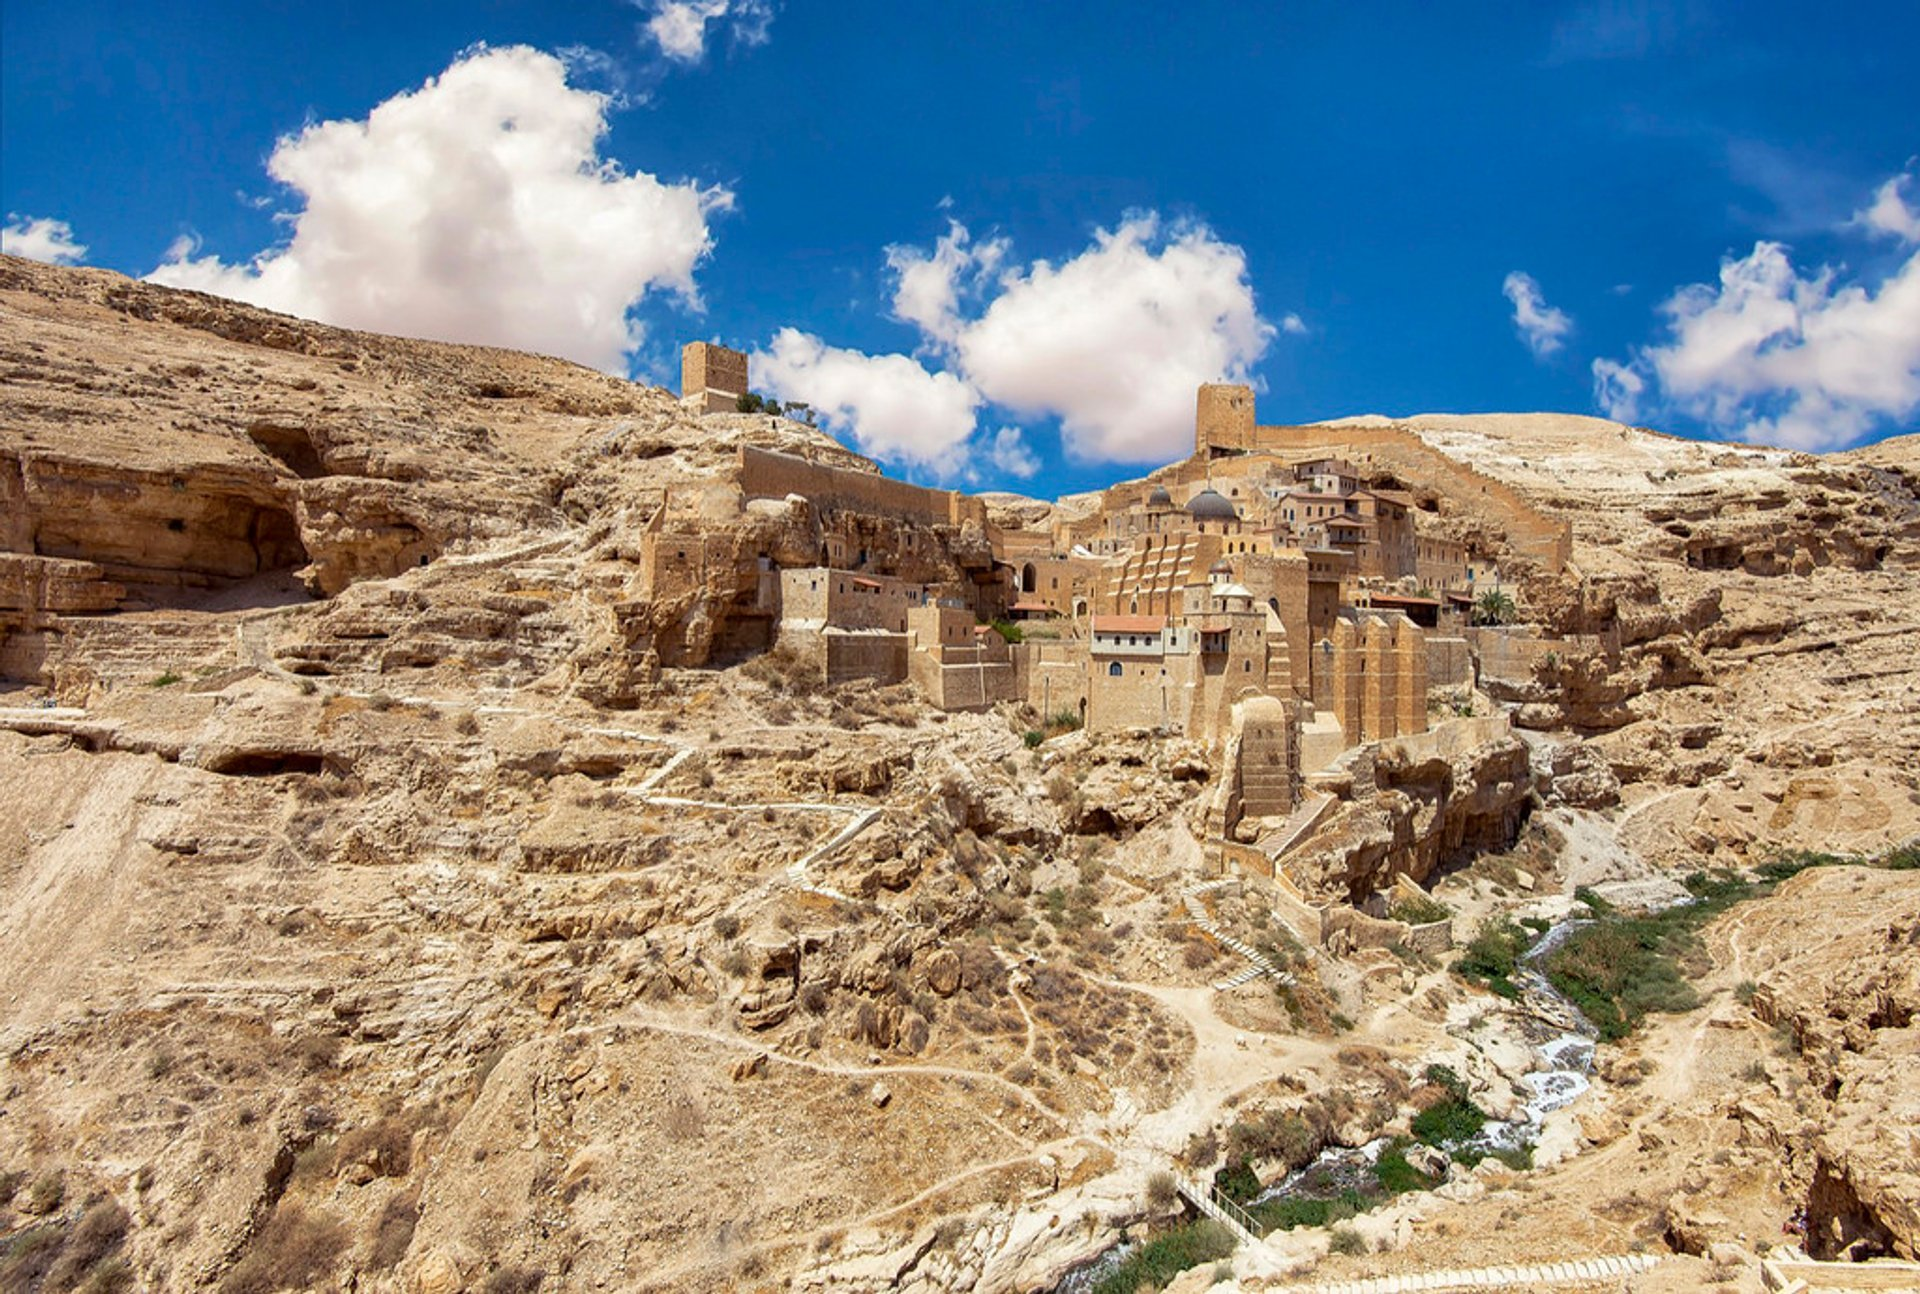 Mar Saba is an Eastern Orthodox Christian monastery overlooking the Kidron Valley at a point halfway between the Old City of Jerusalem and the Dead Sea.